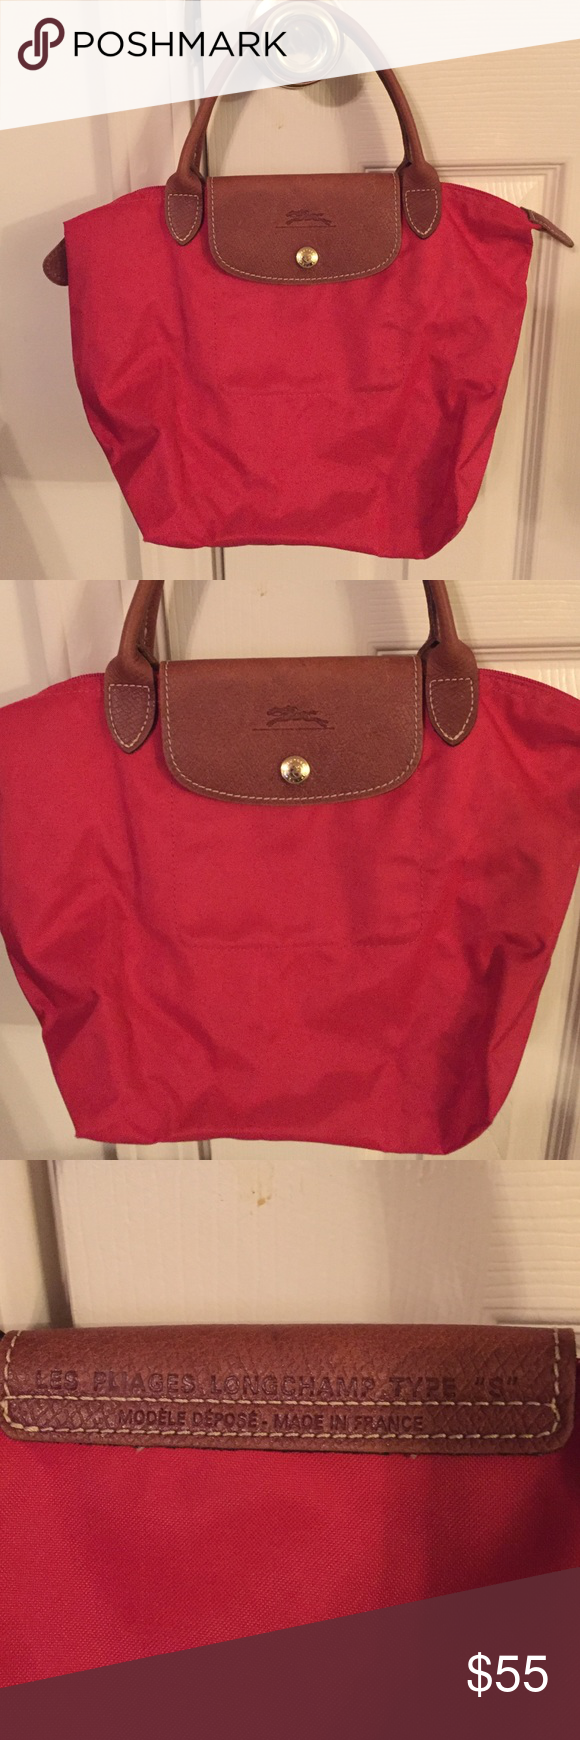 Red LongChamp France Purse Red LongChamp Small France Purse. Nice small bag. Like New. Cute and ready to carry! Longchamp Bags Mini Bags